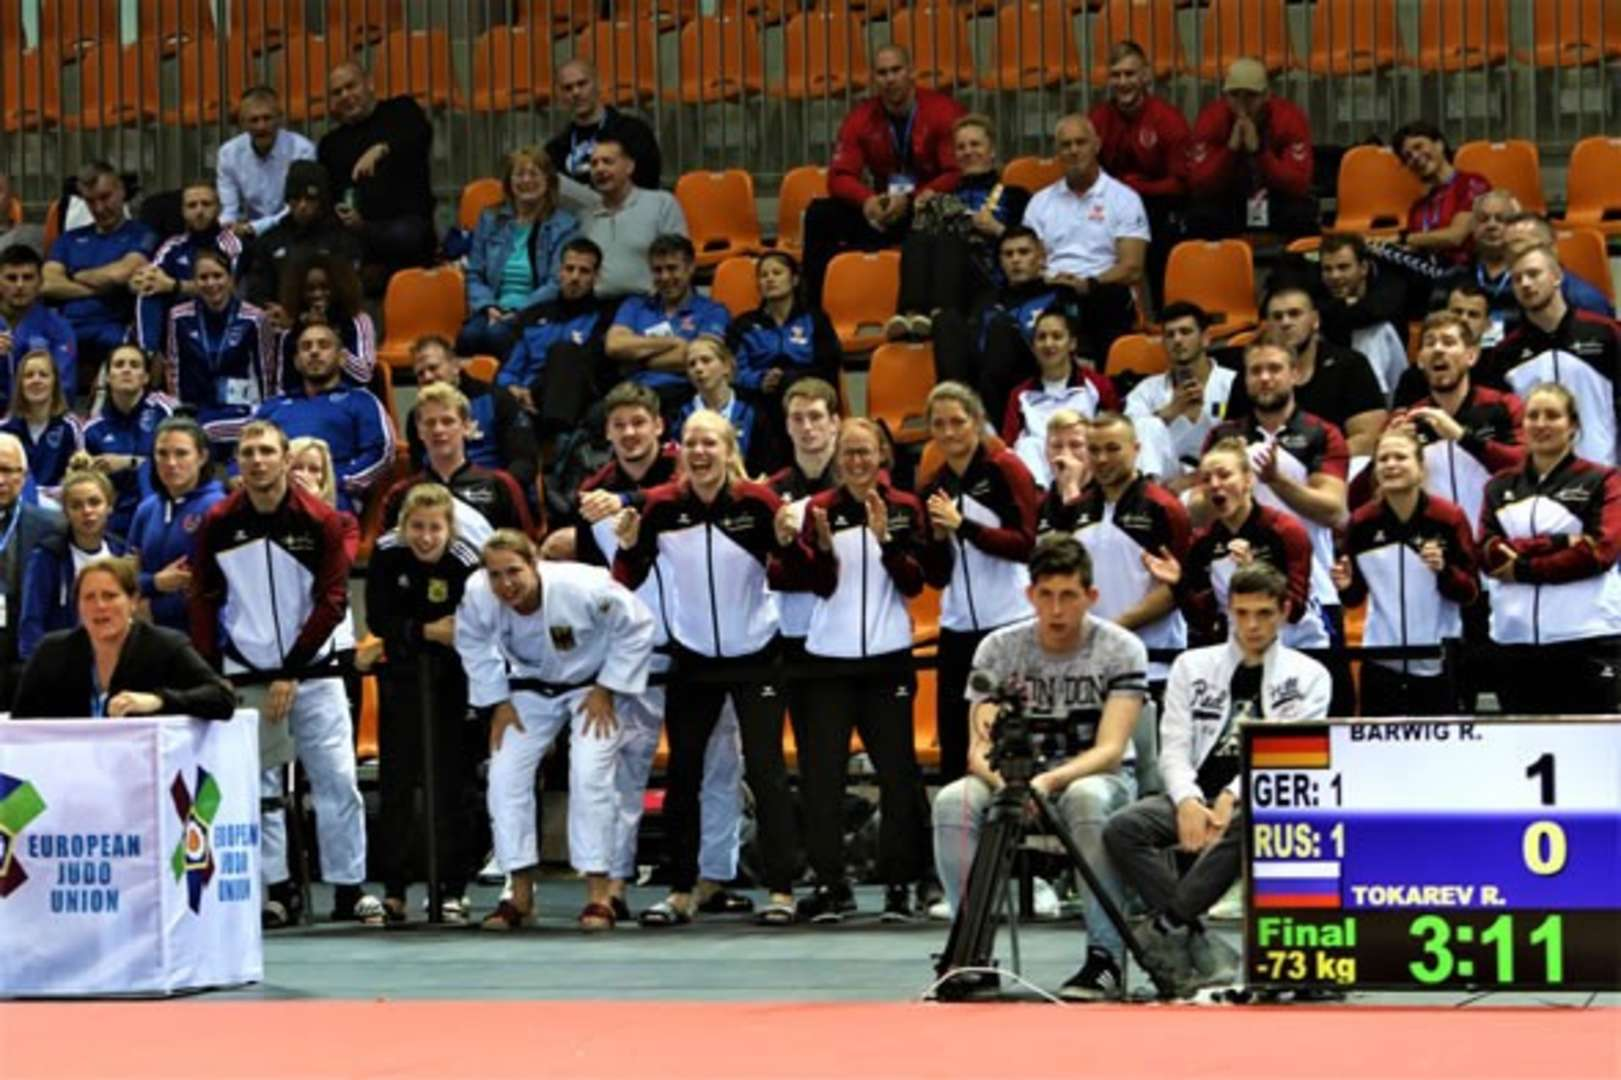 Judo Premiere and Awards for the Police / IJF org